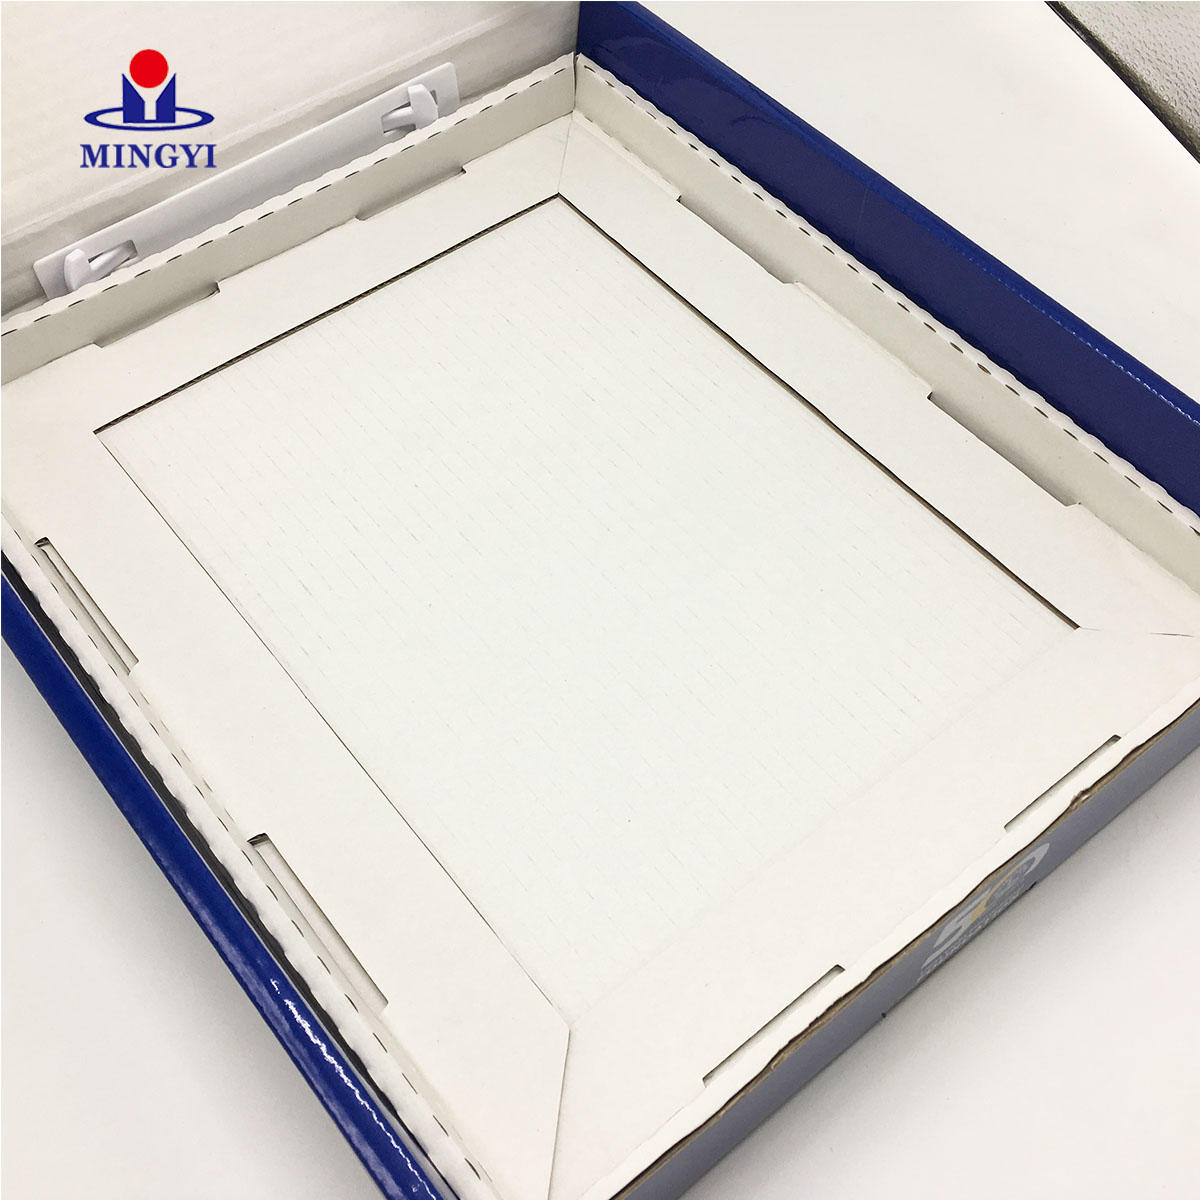 High quality pantone print hand make corrugate clam shell packaging boxes for envelope packaging